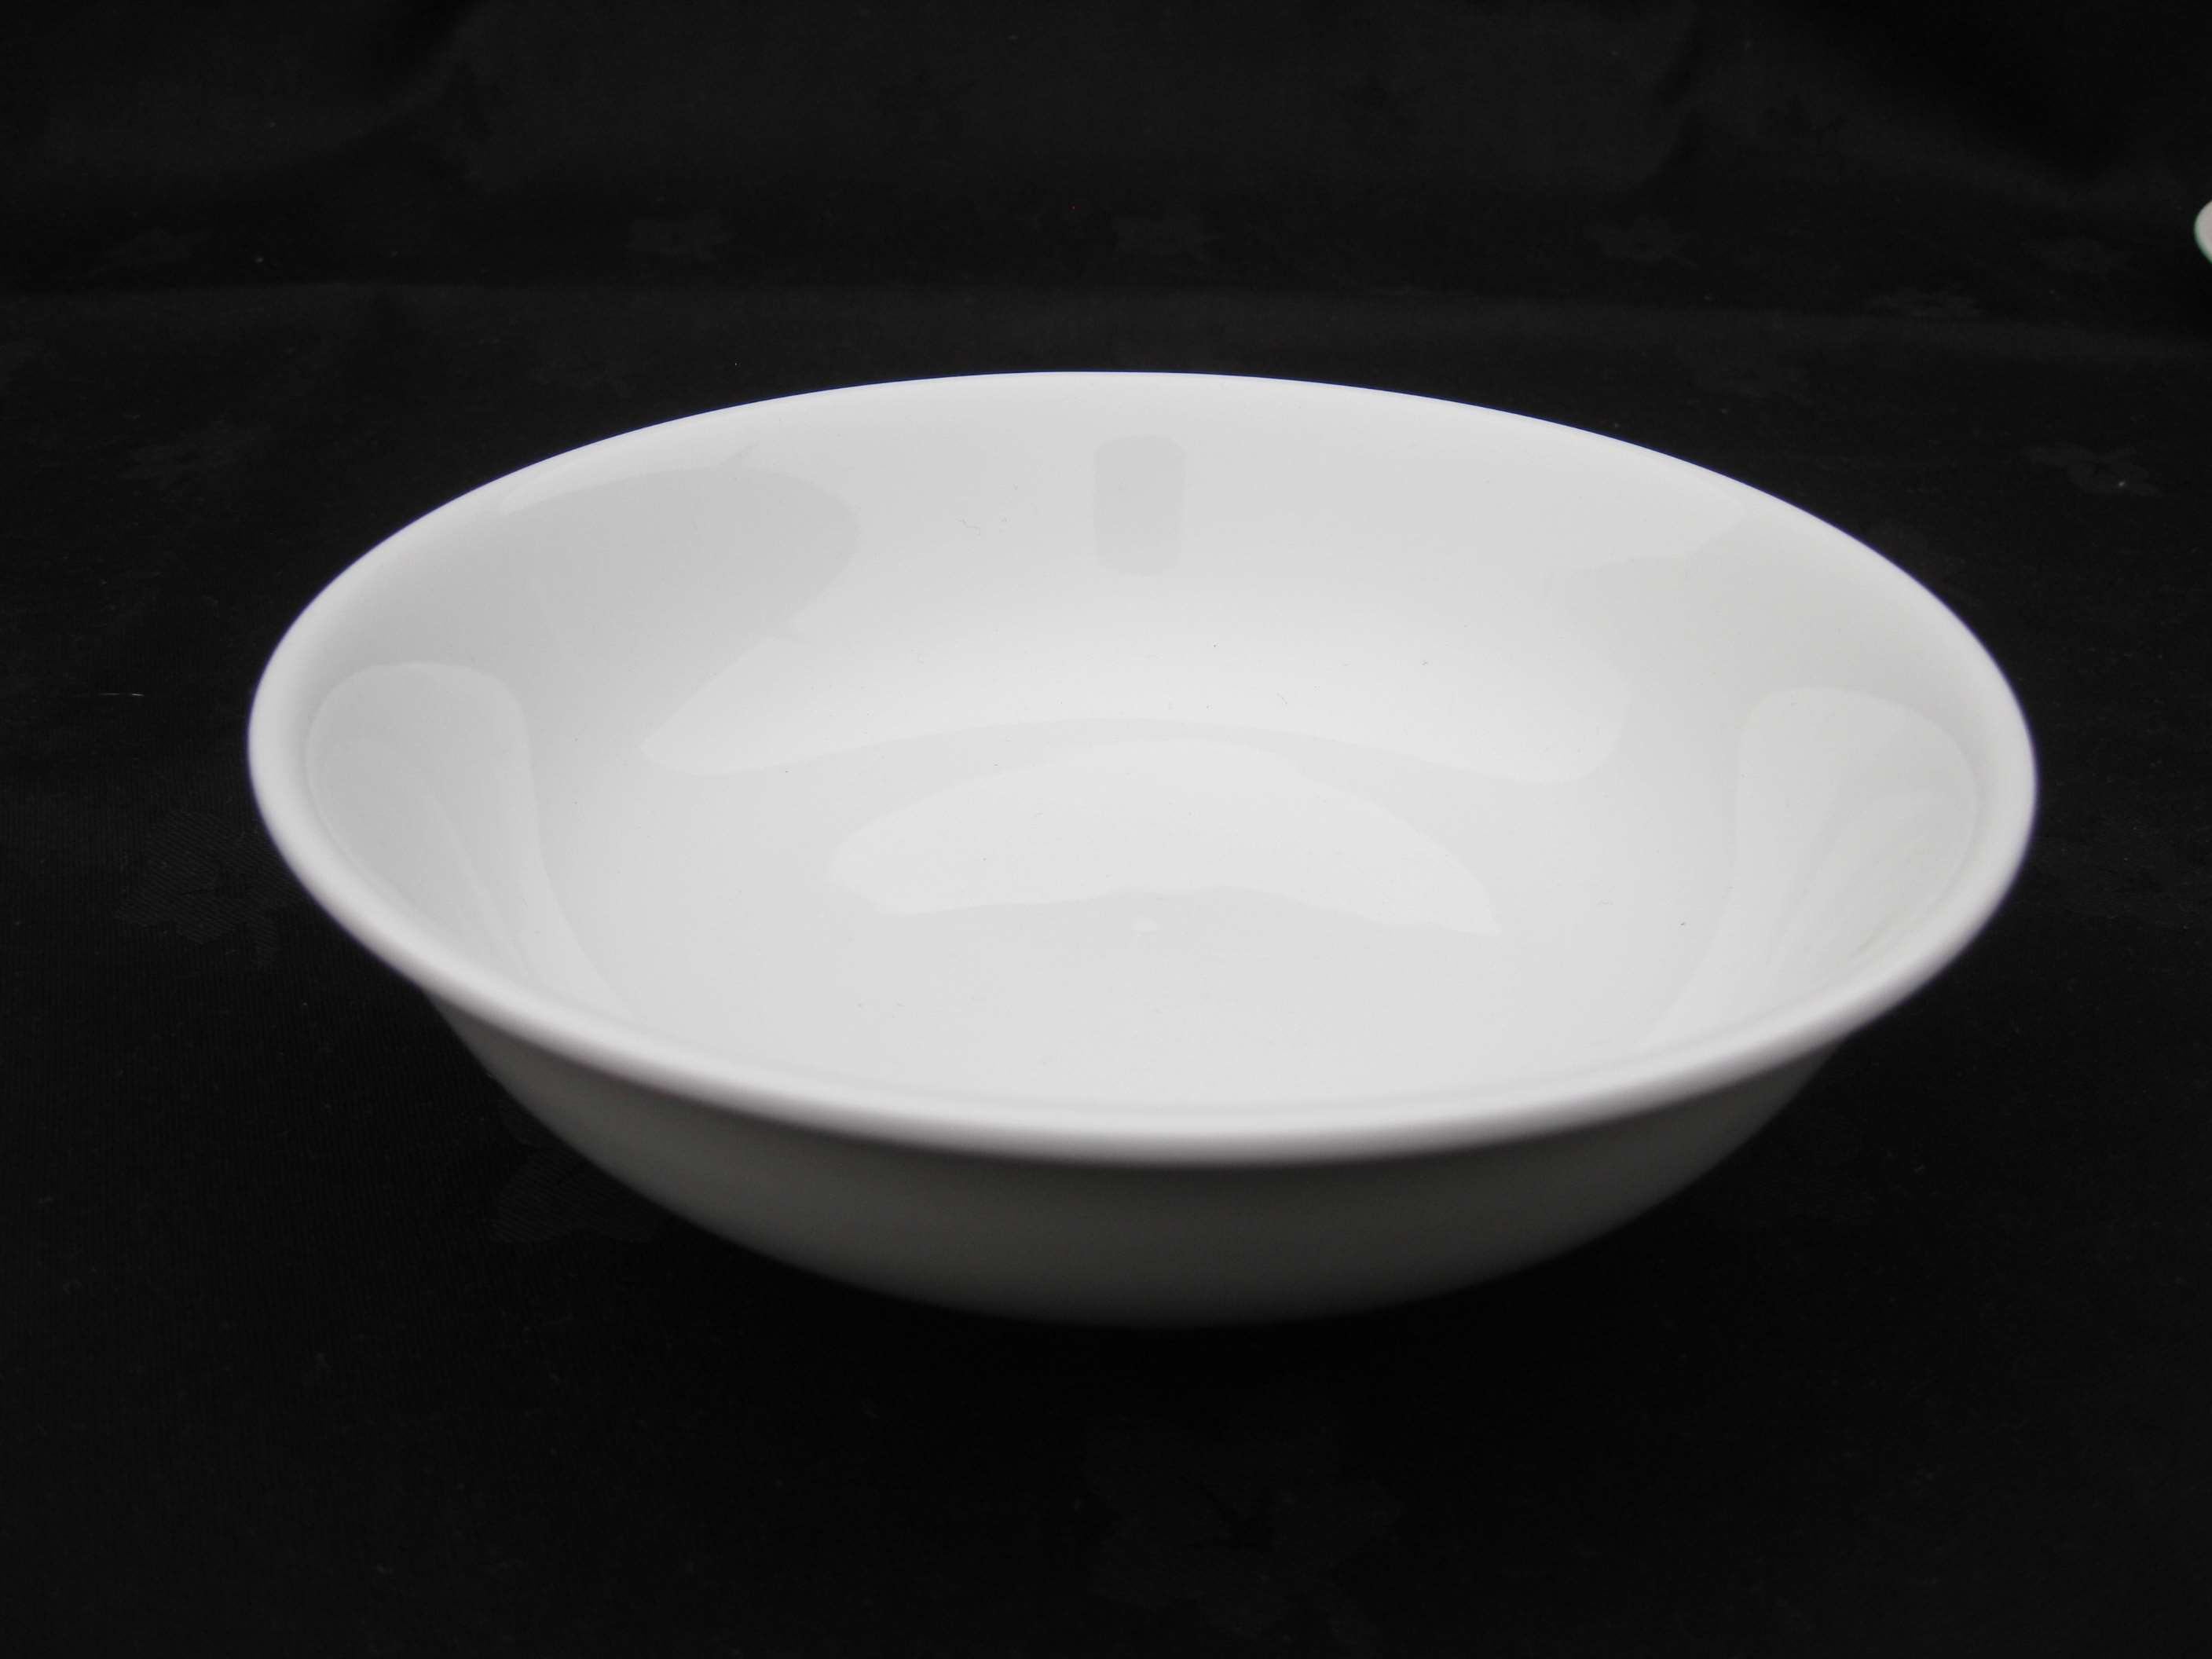 "Lubiana Dessert Bowls 6.5"" (16.5cm) (Pack of 10) image"